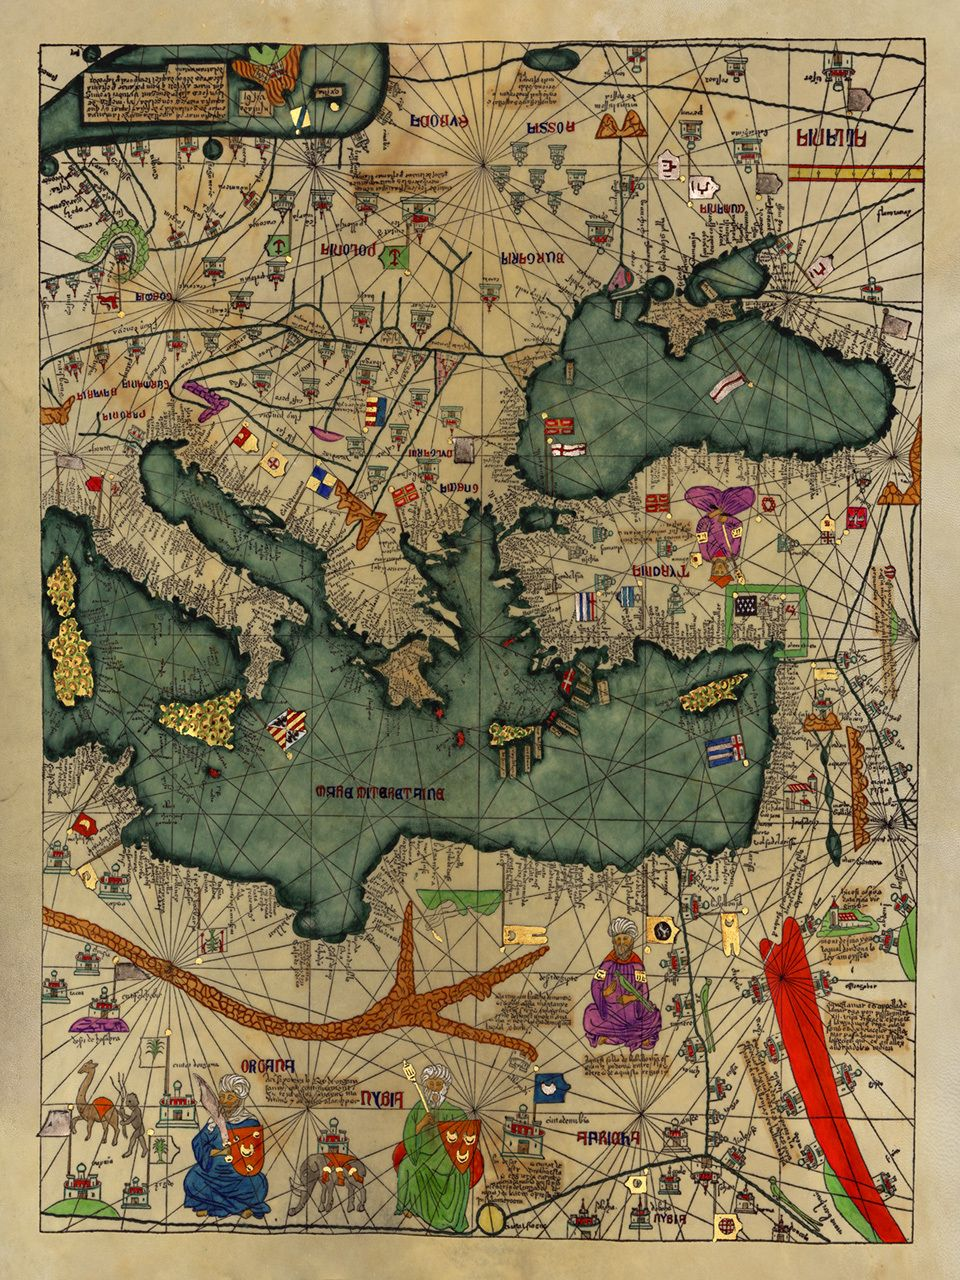 Medieval map all kingdoms of the world catalan atlas 1375 4 14th century medieval map all kingdoms of the world catalan atlas 1375 4 gumiabroncs Gallery